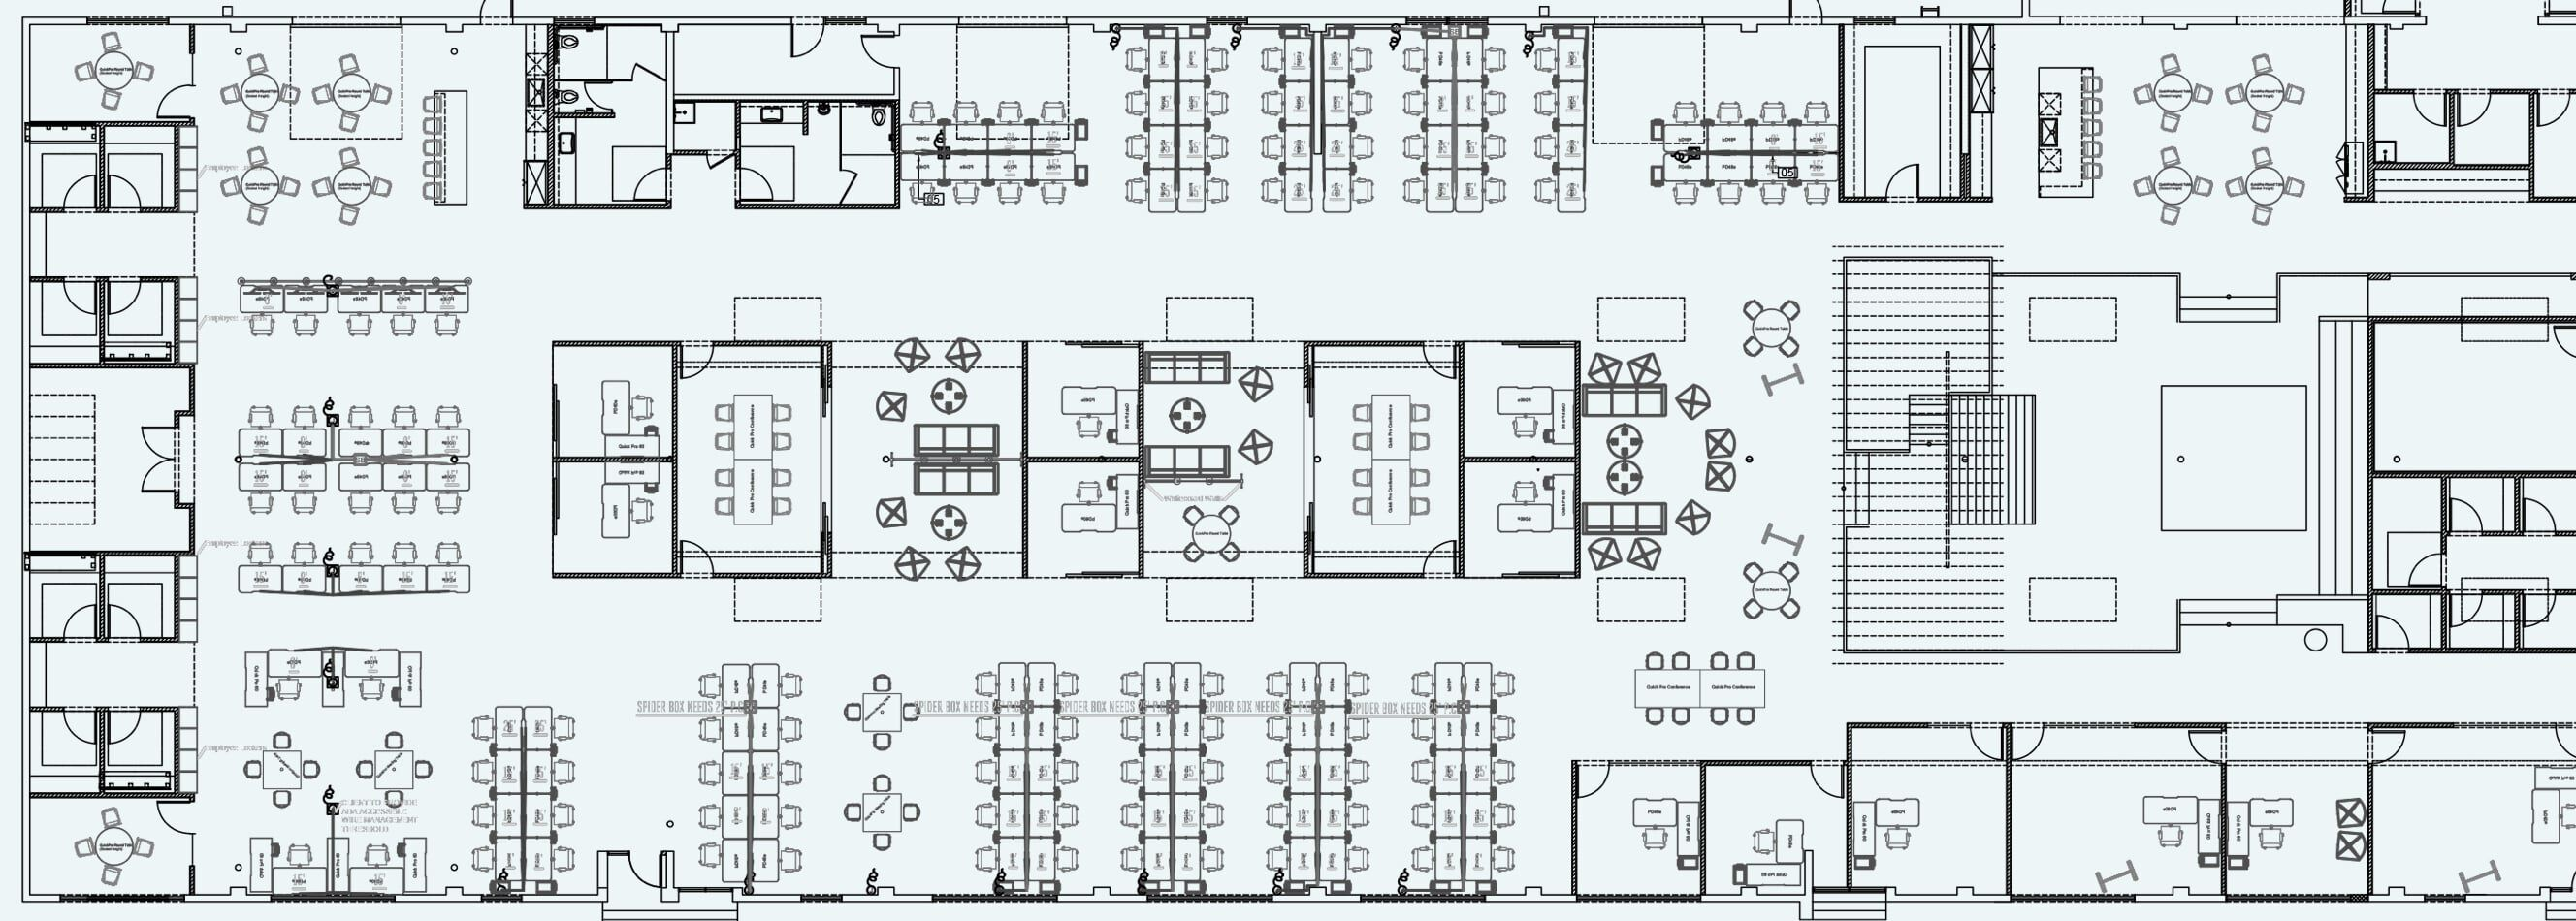 floor plan for hawke media space  image